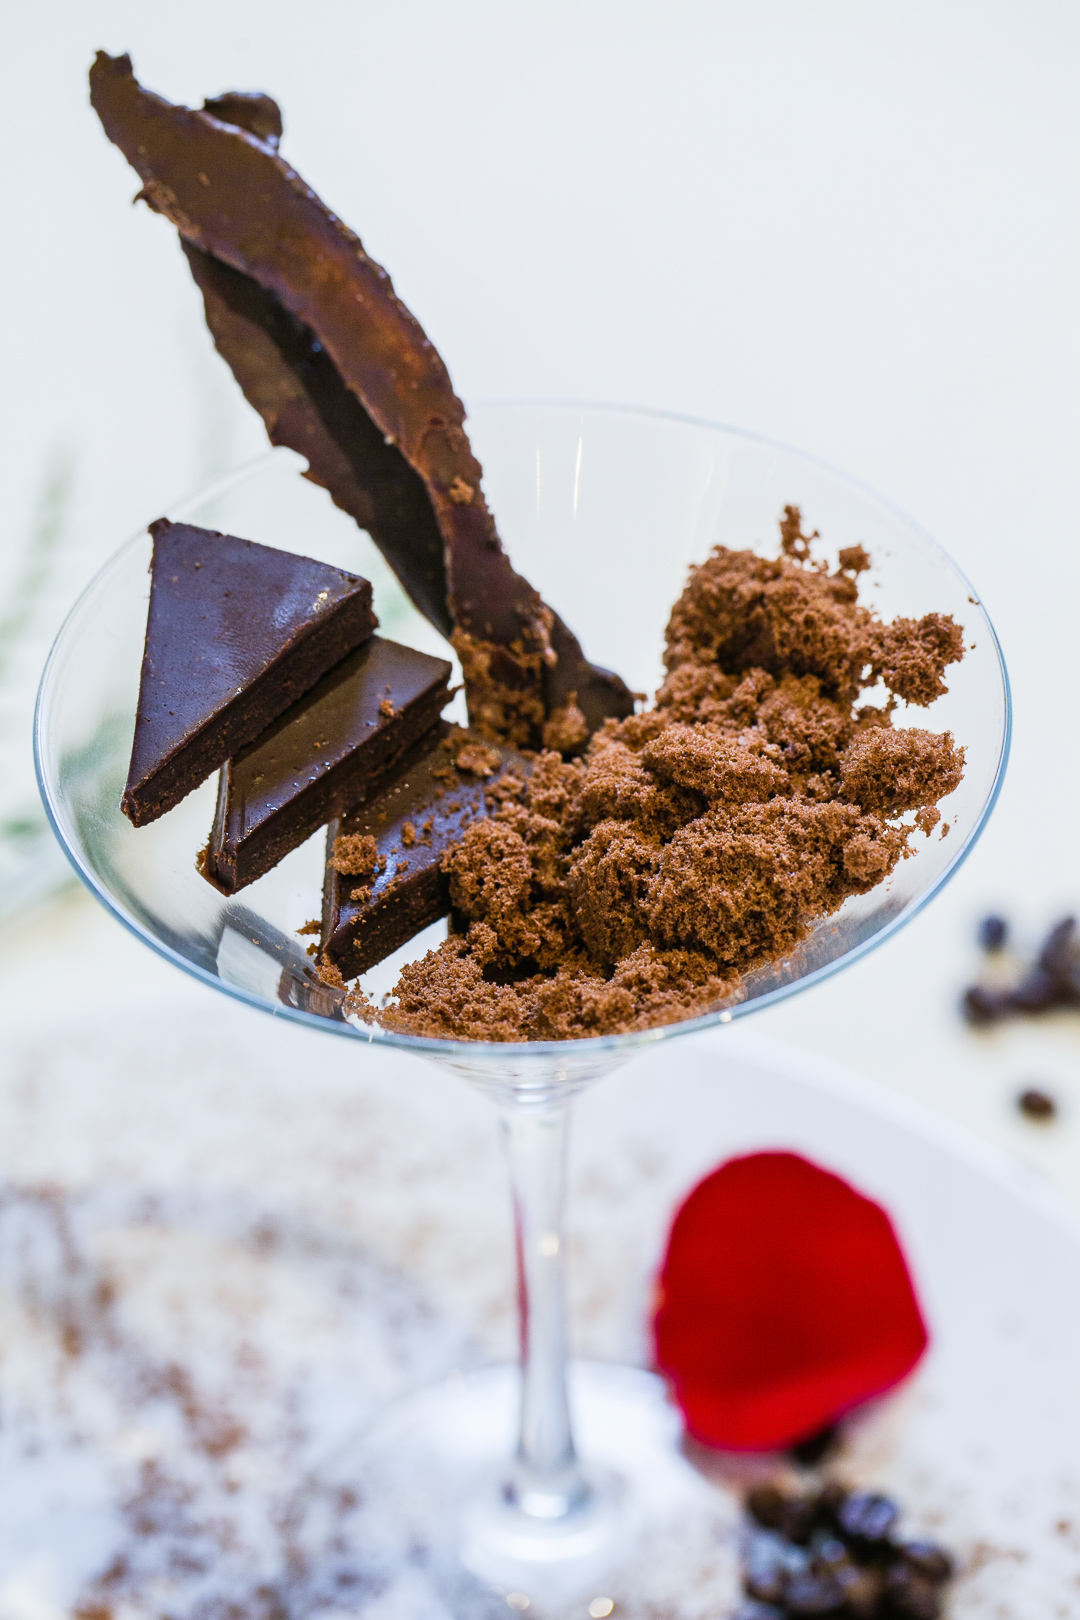 chocolate dessert in a martini glass